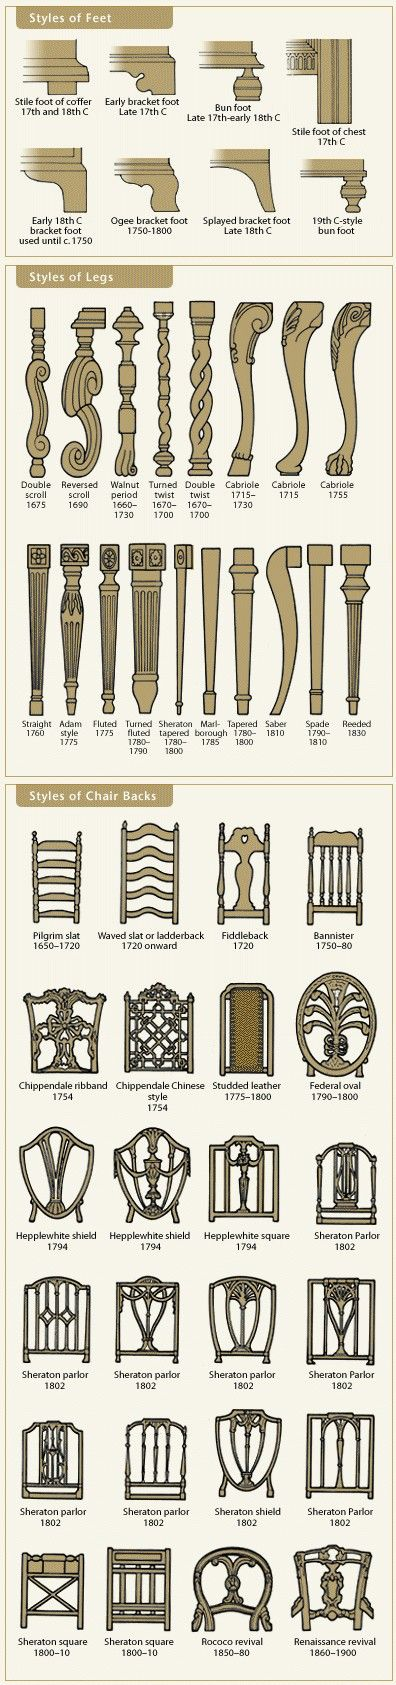 Antique Sofa Styles Guide   New House Designs